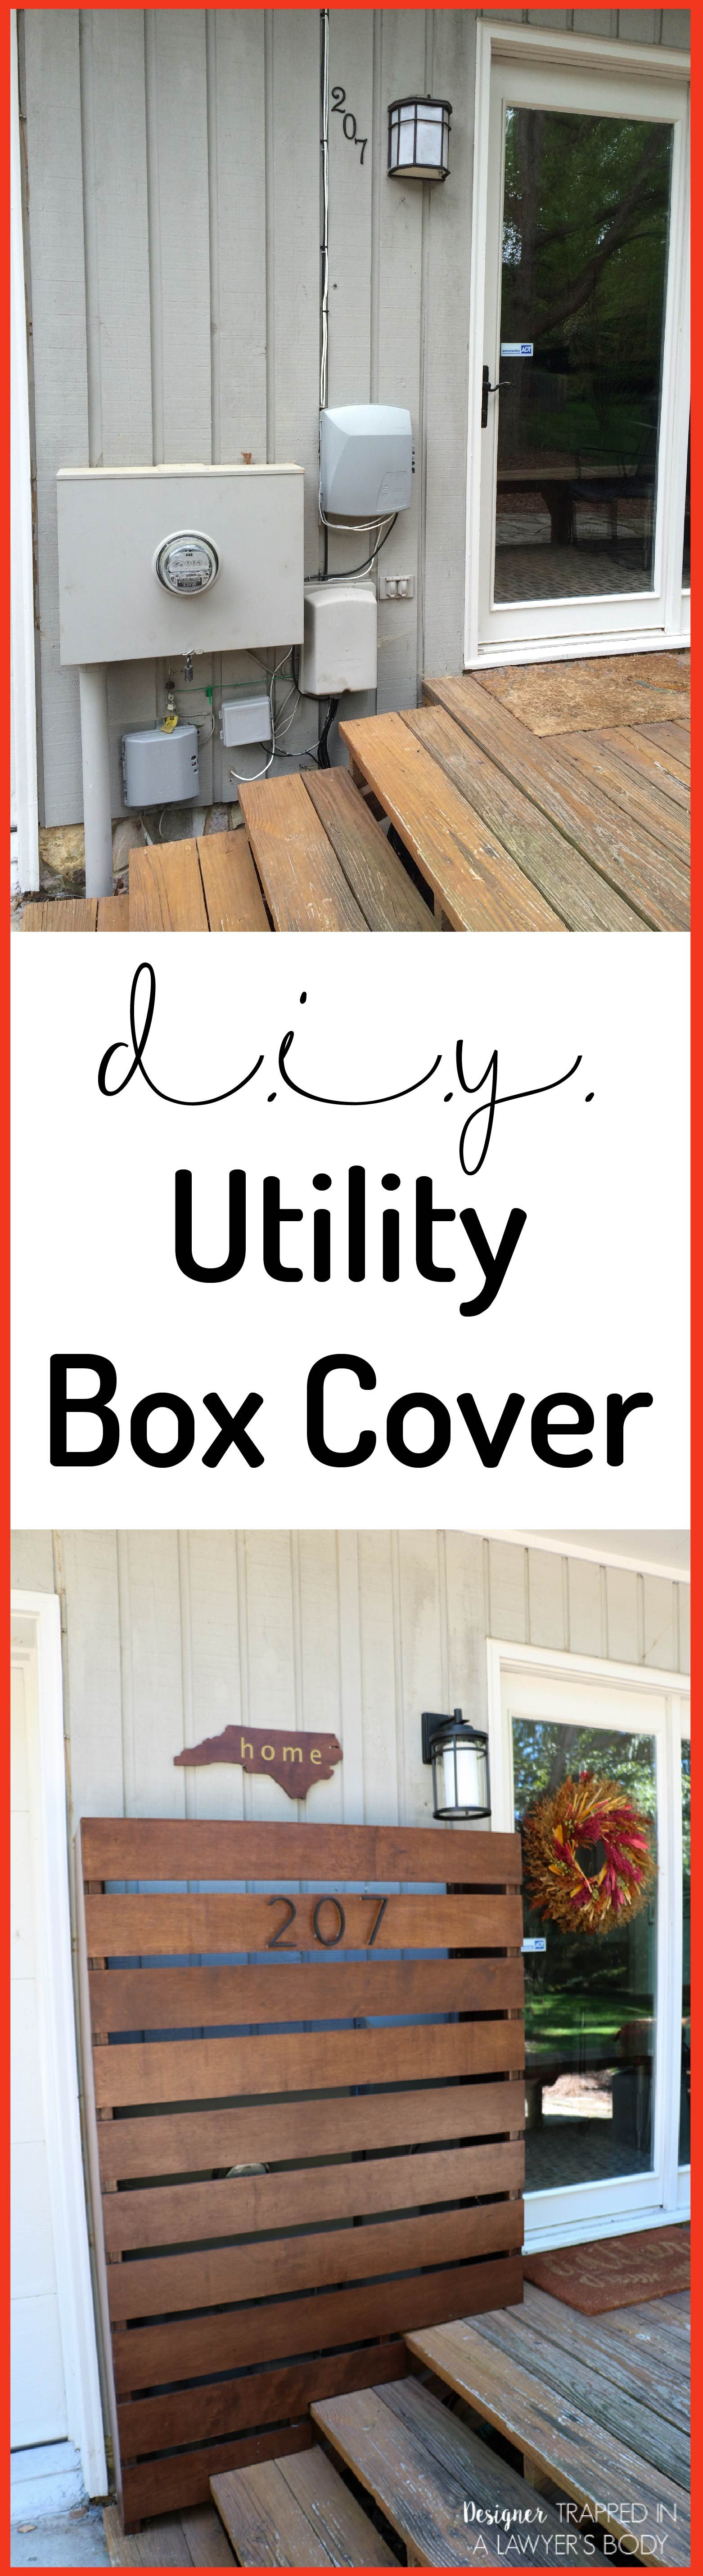 Brilliant Idea To Cover Ugly Utility Bo Learn How Make A Diy Box With This Awesome Tutorial By Designer Tred In Lawyer S Body